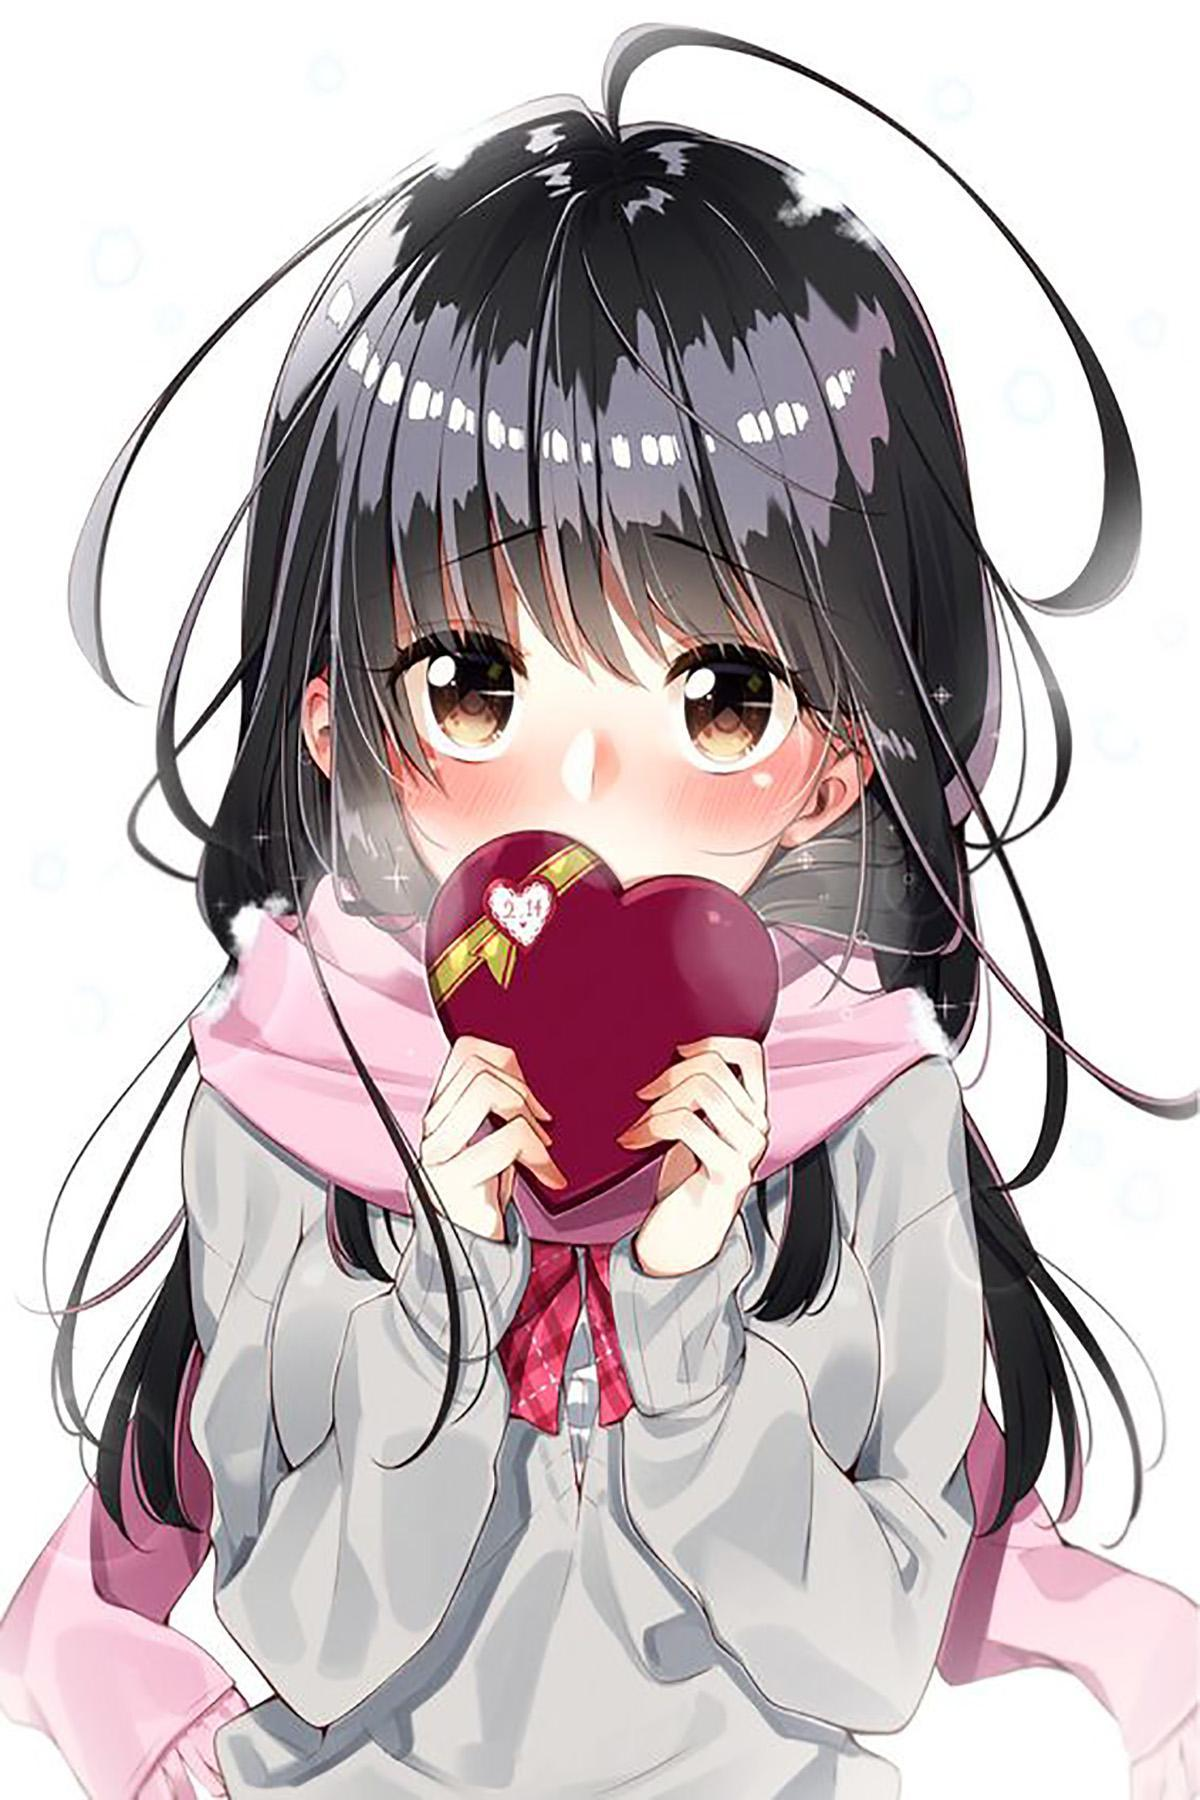 anime kawaii wallpaper - wallpapers for Android - APK Download